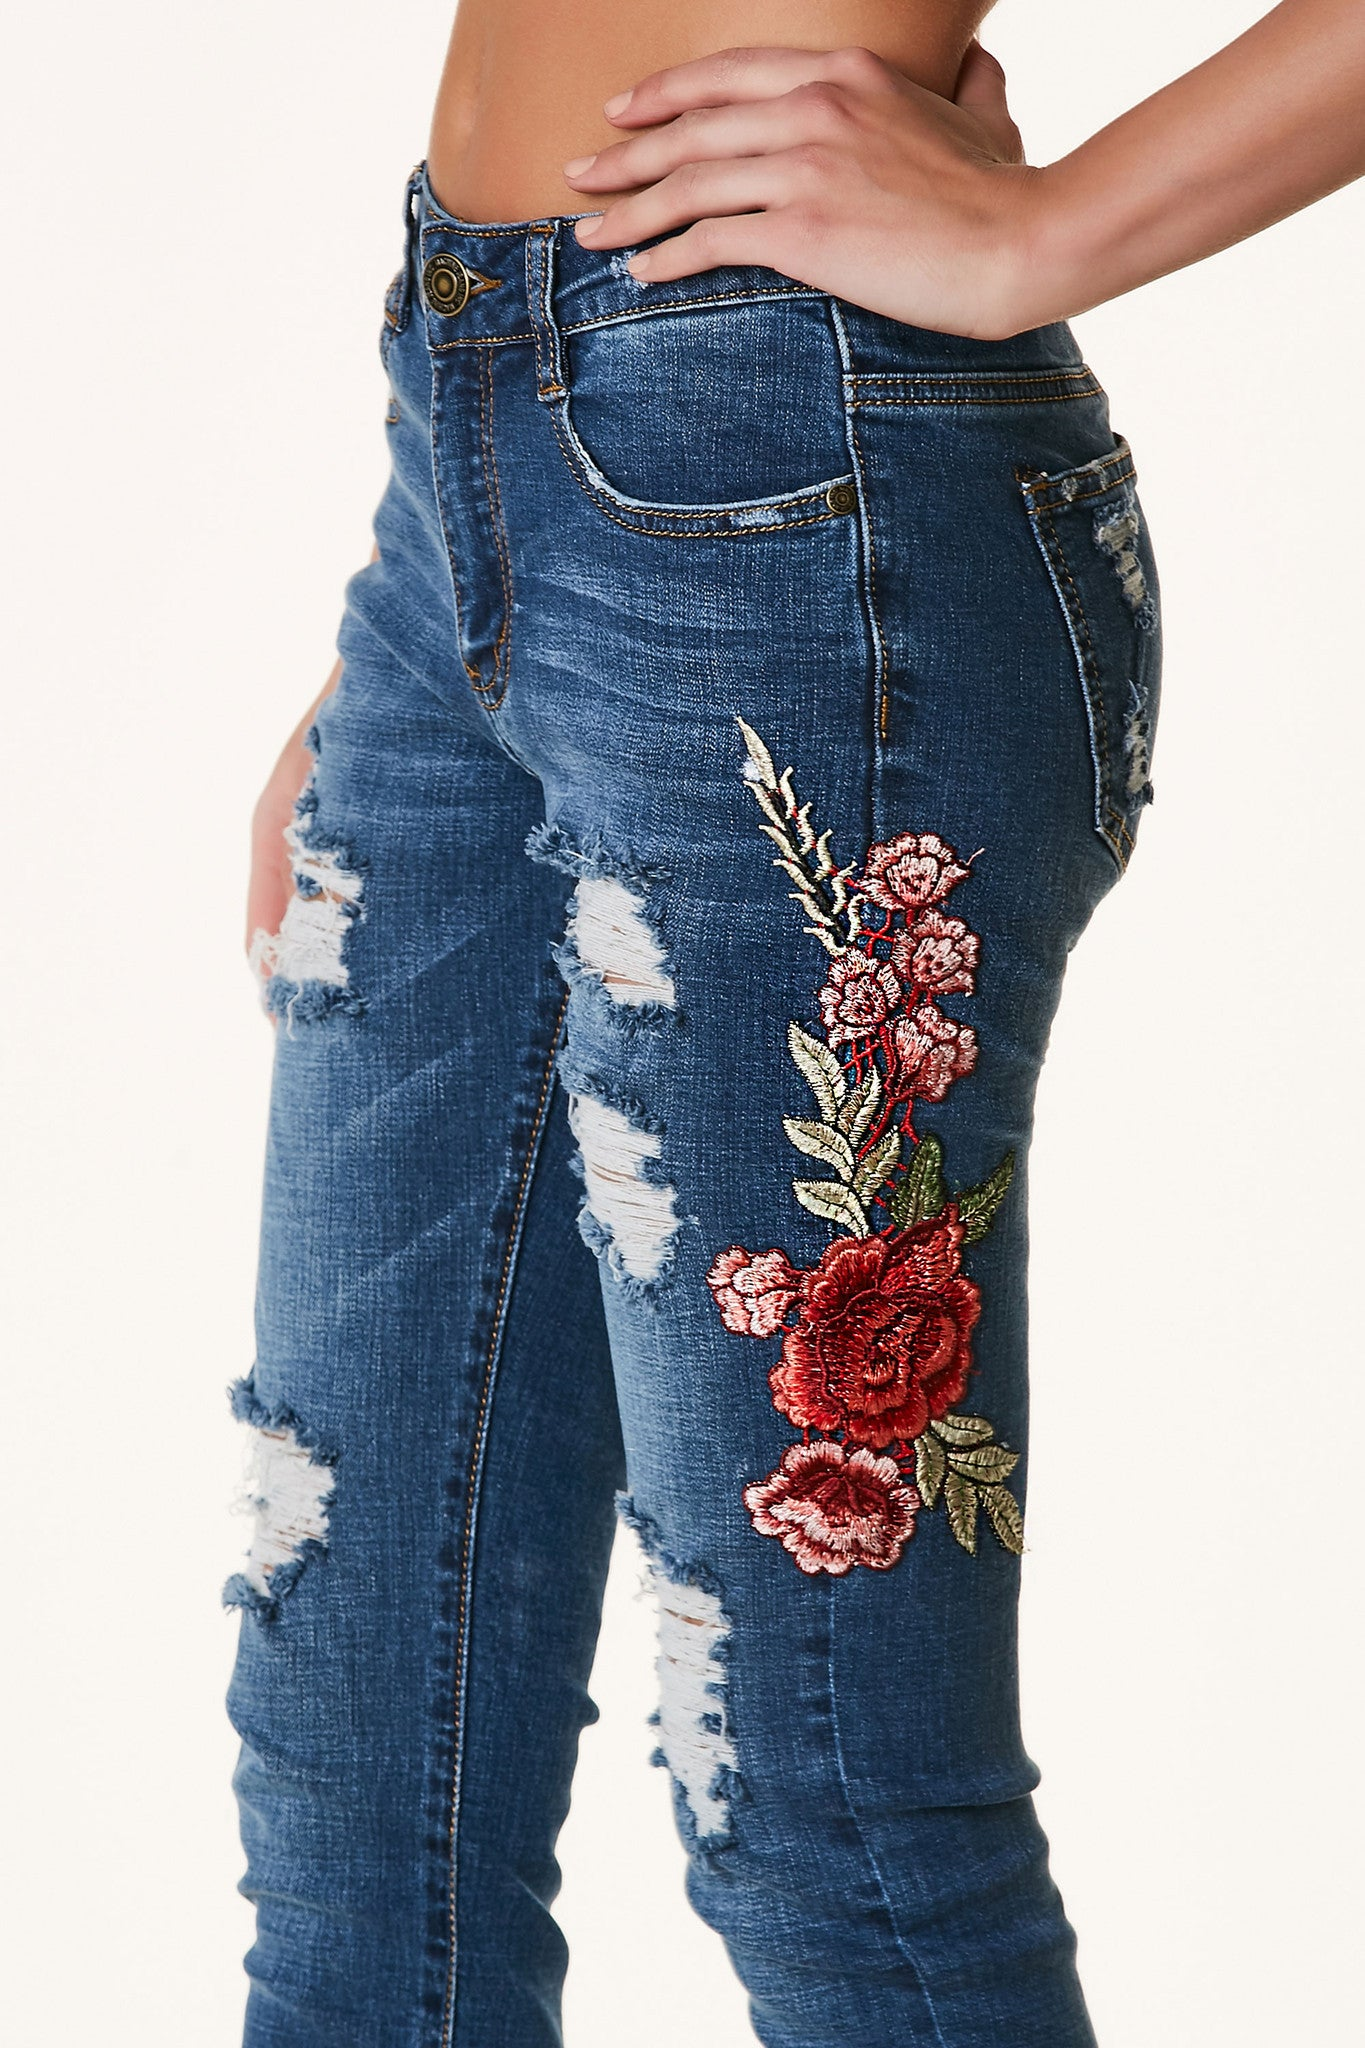 Classic blue mid rise jeans with distressting throughout and intricate floral patch detailing on one side.